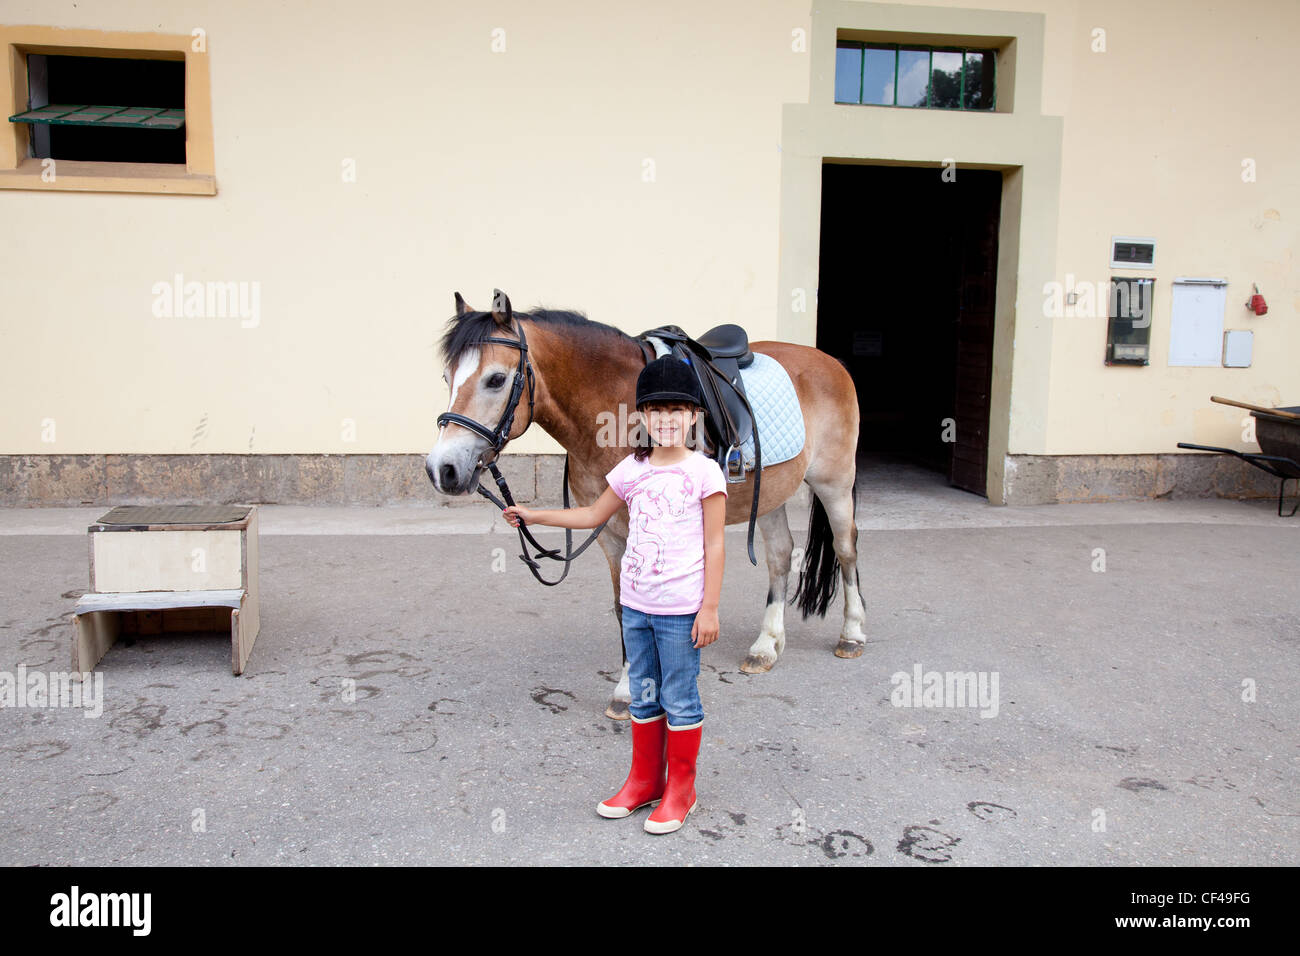 Little girl standing next to her horse ready for a horseback riding lesson. - Stock Image